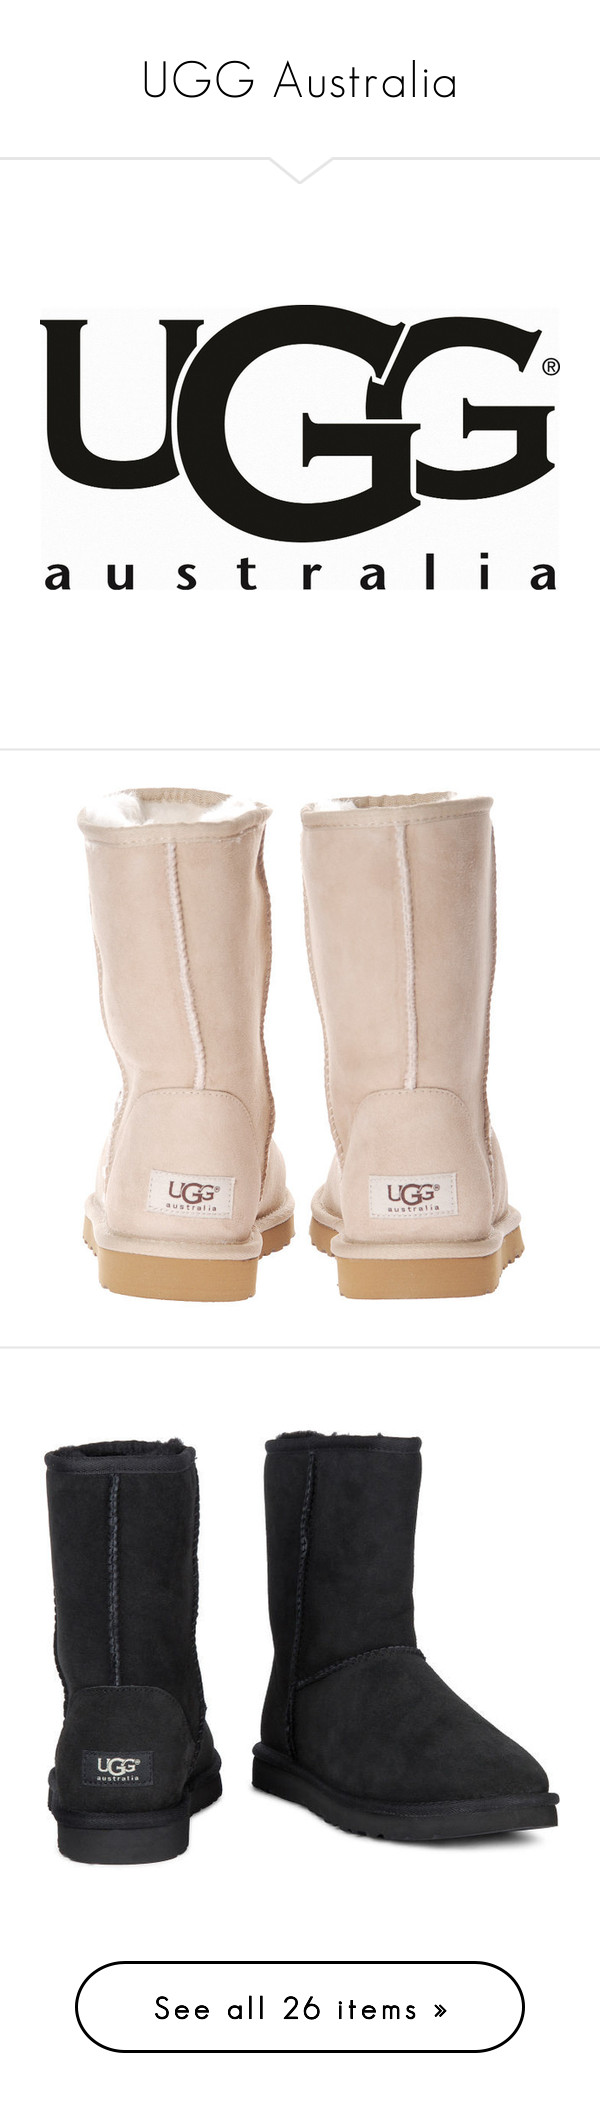 """""""UGG Australia"""" by dddawn ❤ liked on Polyvore featuring logos, fillers, shoes, boots, ankle booties, uggs, women, rock boots, short boots and short ankle booties"""